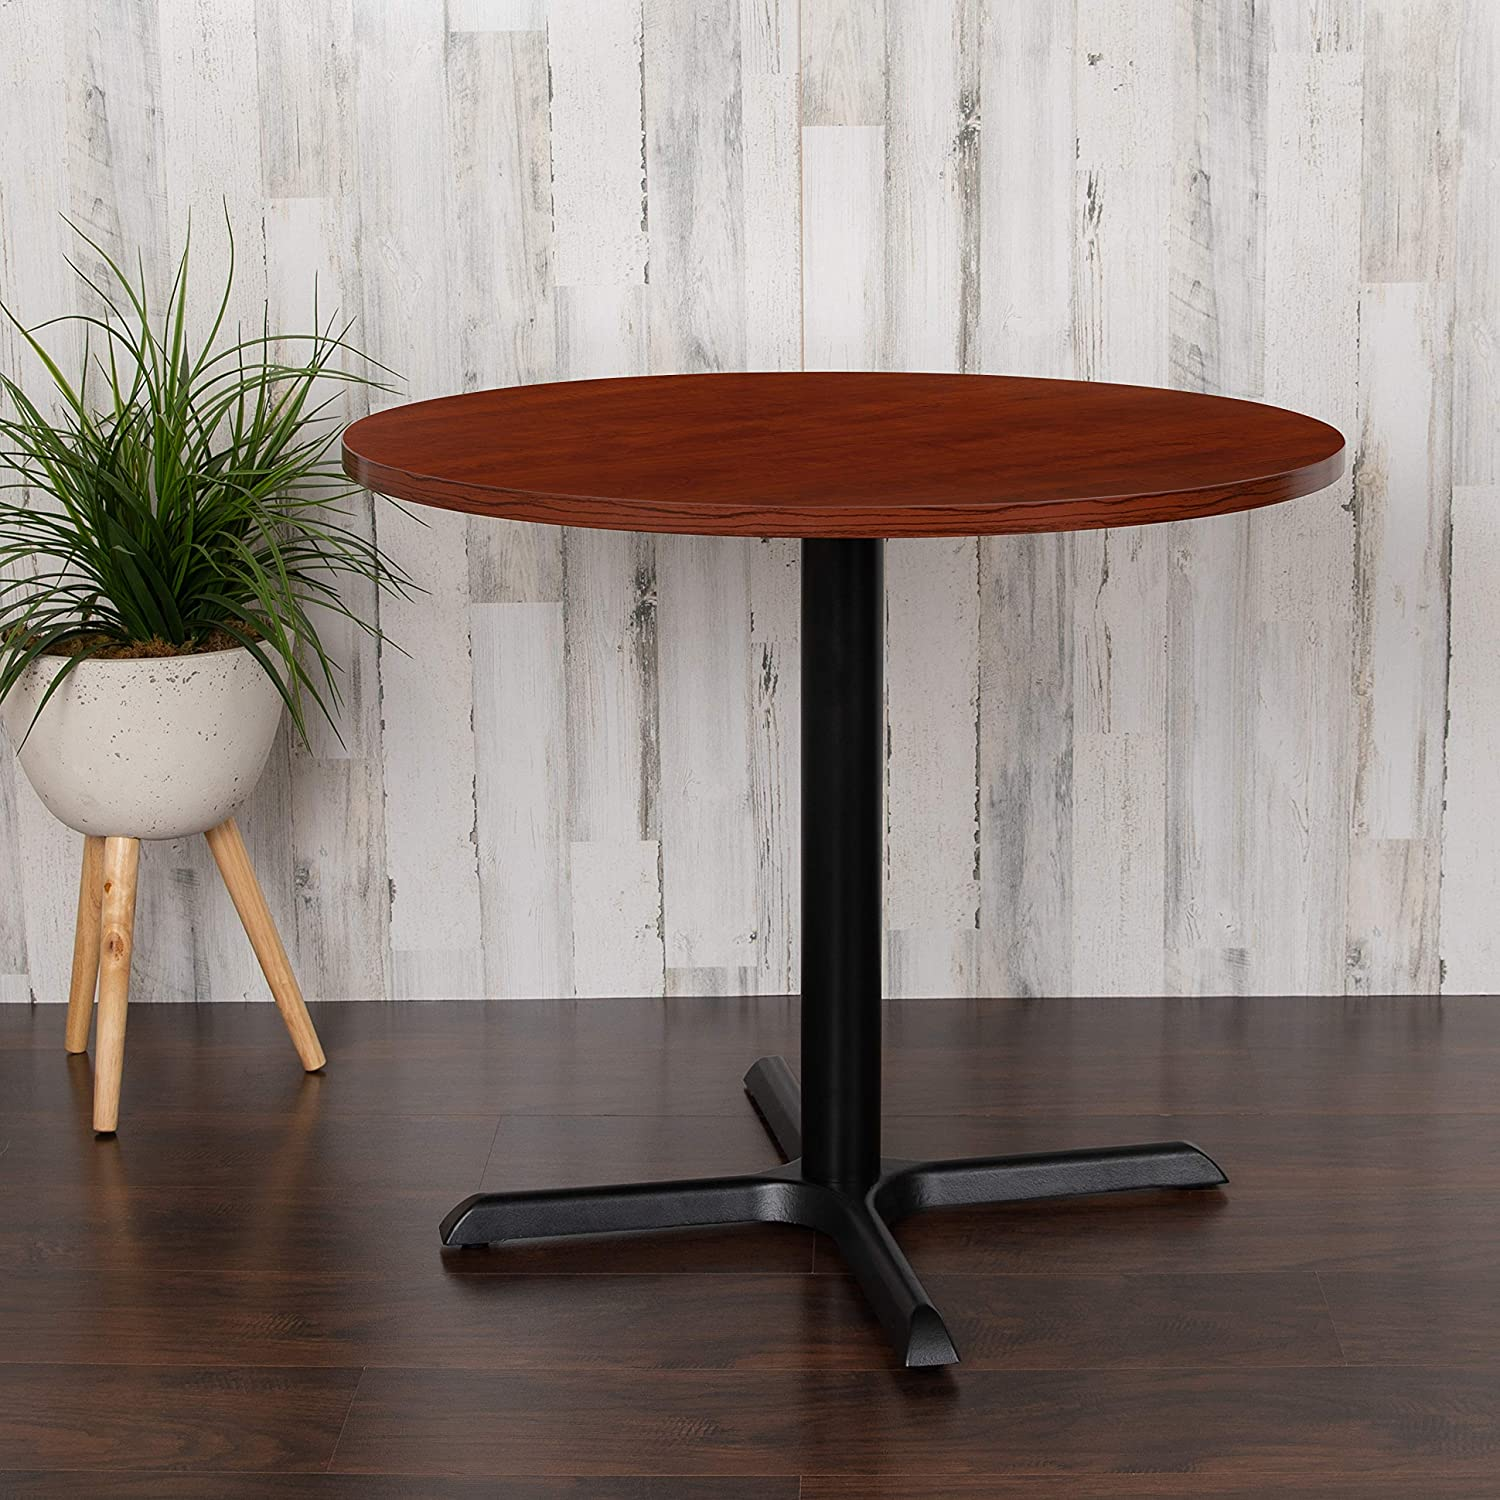 Large discharge sale Flash Max 67% OFF Furniture 36